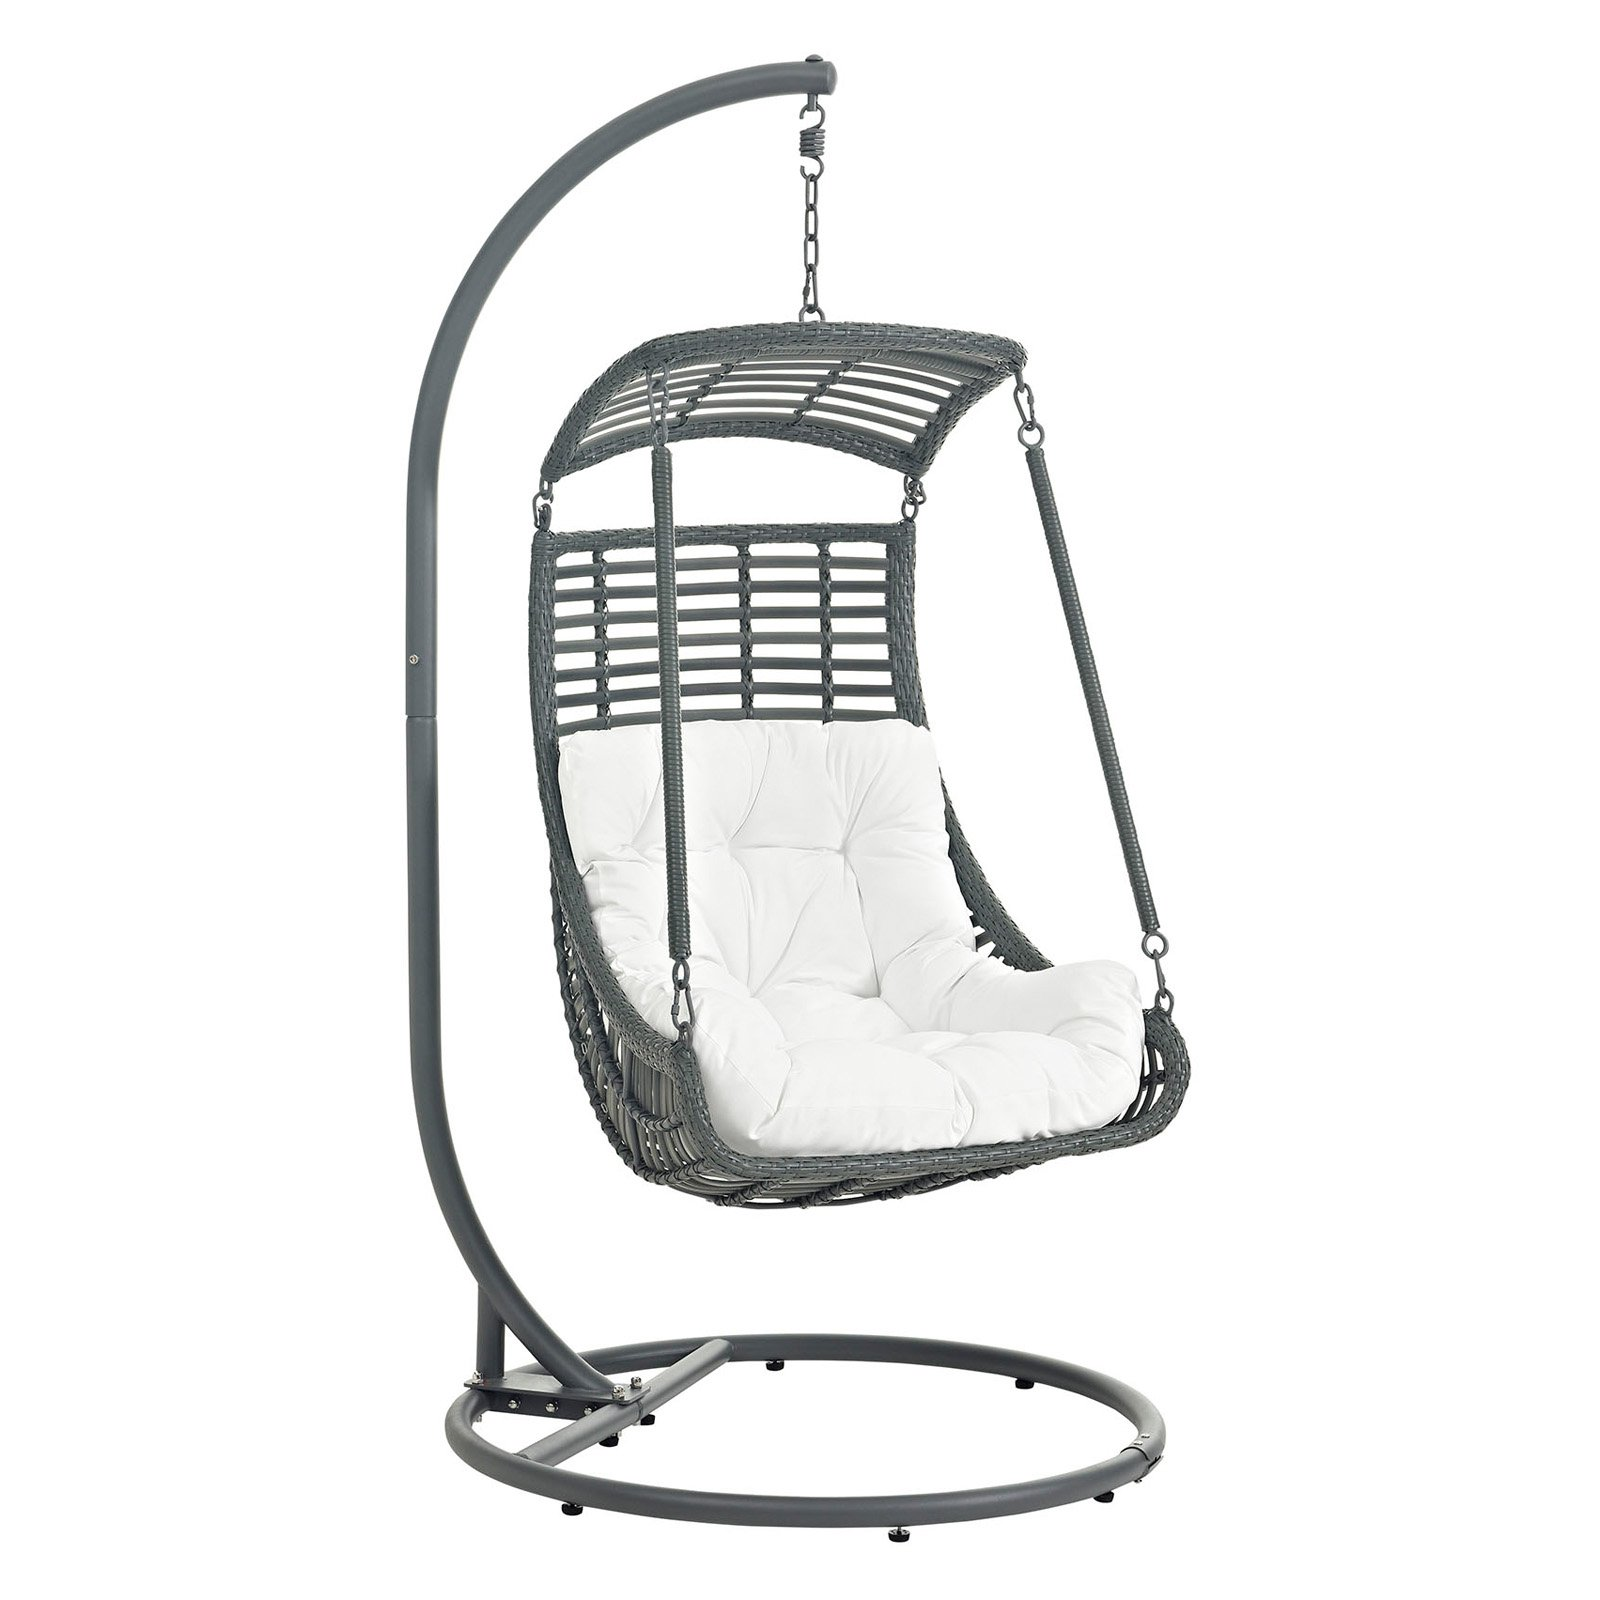 Modway Jungle Outdoor Patio Swing Chair, Multiple Colors Available